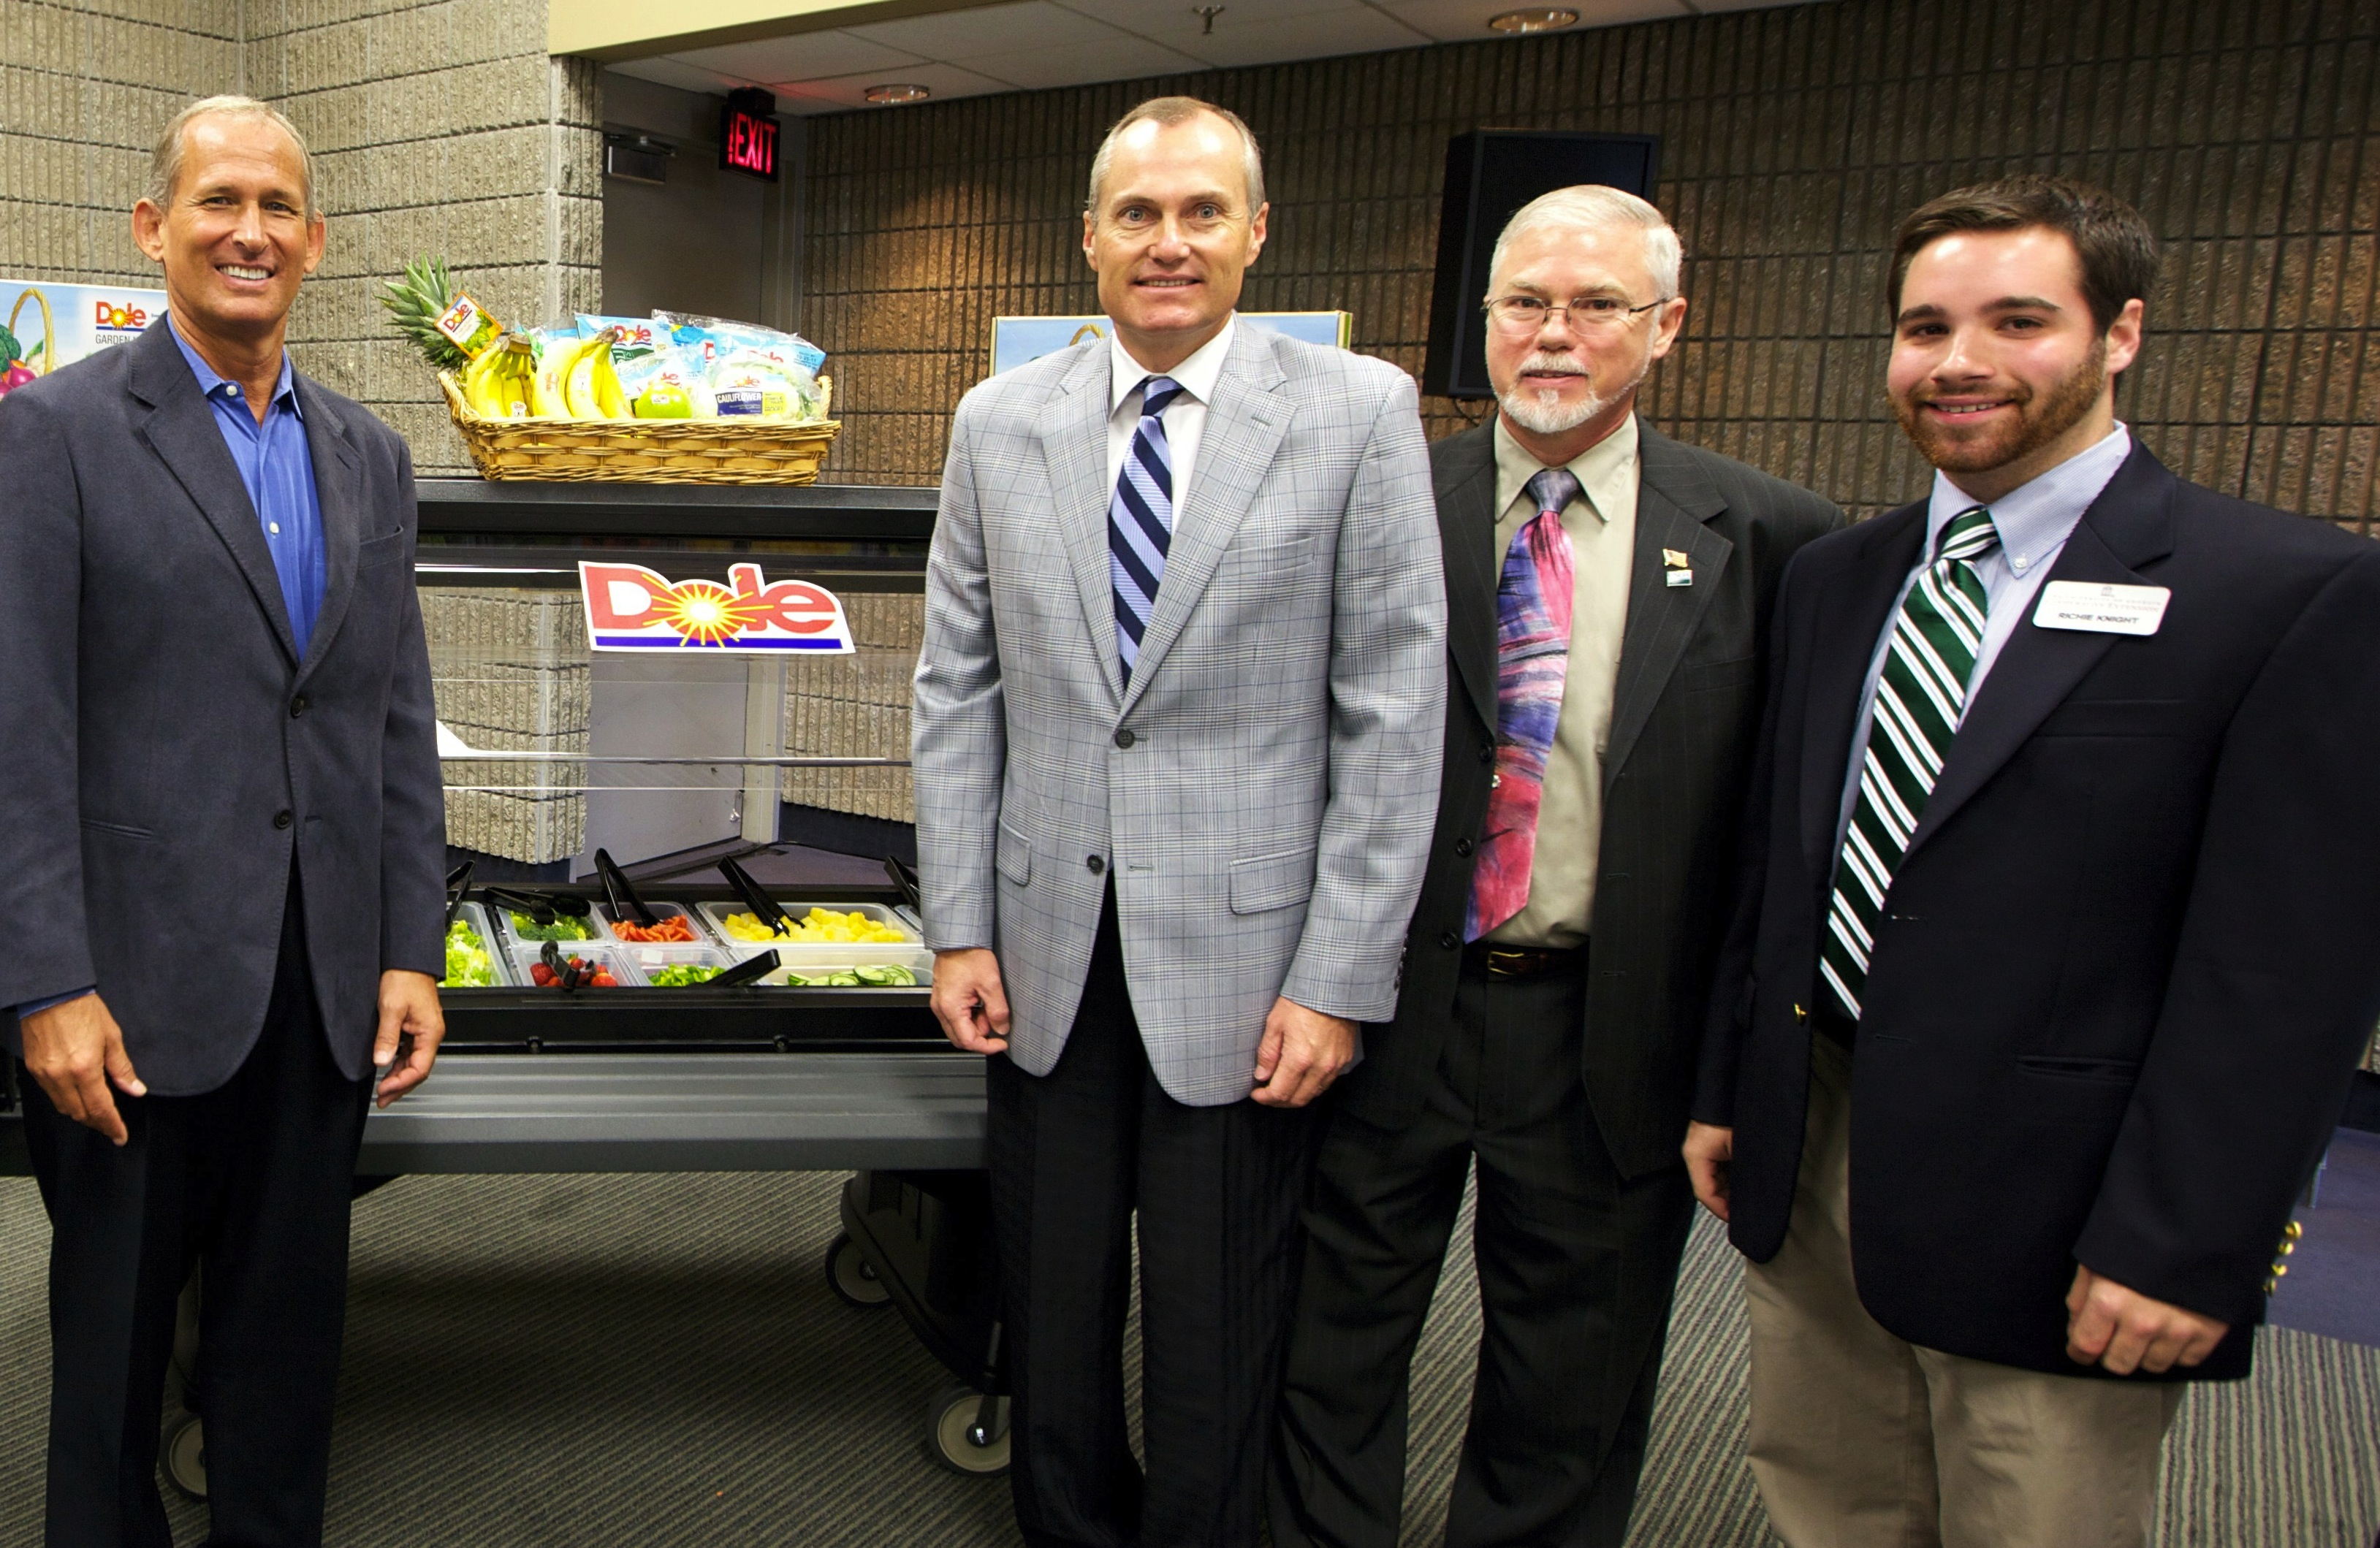 Dole Foods, Georgia Lt. Gov. Casey Cagle and Georgia 4-H have joined forces to help three Georgia high schools serve healthy food on new salad bars. Pictured left to right are Marty Ordman (Dole), Cagle, Kirk Faruquharson (USDA) and Richie Knight (Georgia 4-H).